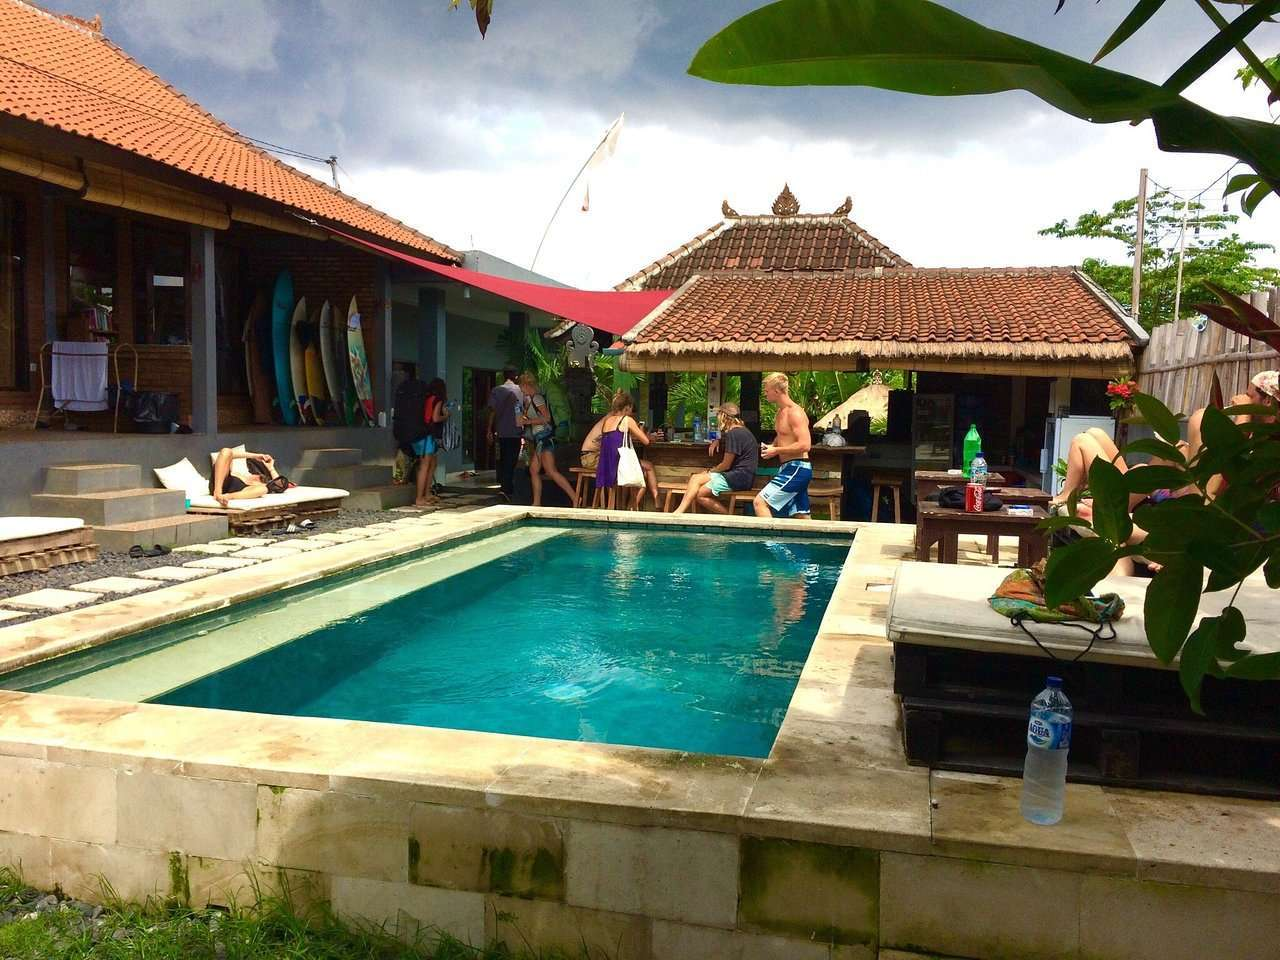 Lay Day Surf Hostel via TripAdvisor